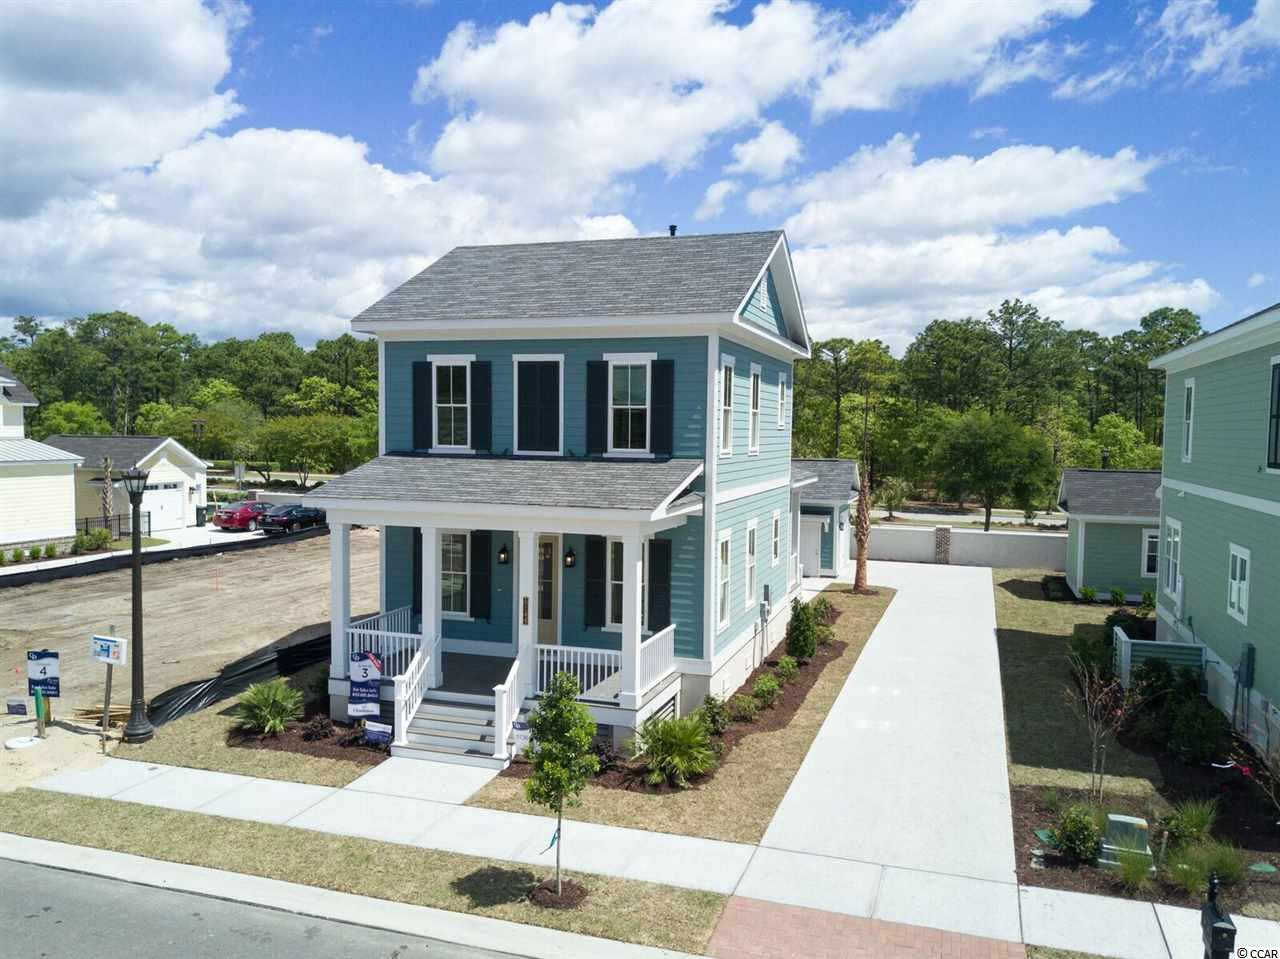 To-be-built home! At 1,793 heated sqft, the two story Charleston home located on Lot 9 offers 3 bedrooms with a first level master suite and 2.5 bathrooms. NOW SELLING at Living Dunes- New construction homes with lakefront and water view real estate available. A Grande Dunes neighborhood on the north end of Myrtle Beach less than 1 mile from the ocean featuring lowcountry style single and multi-family homes constructed by locally renowned, CRG Companies. Built with higher-grade materials and green construction methods that surpass regulations allowing you to own a quality home that is energy efficient and eco-friendly. Design your Living Dunes home with many upscale features that come as a standard including cutting-edge home technology. As Myrtle Beach's first Gigabit community, Living Dunes provides residents with internet connections 100 times faster than the average meaning more time spent doing what you want. Residents have superior on-site amenities with a swimming pool, kiddie pool, clubhouse, 8 miles of walking trails, 10 acres of lakes, and green spaces. Thoughtful design and unprecedented amenities, the community's location offers convenient access to the beach, Grande Dunes Ocean Club, Marina, golf courses, and several major marketplaces with groceries, pharmacies, shopping, dining, fitness, health care, salons, and more. Live Local, Live Smart, Living Dunes.